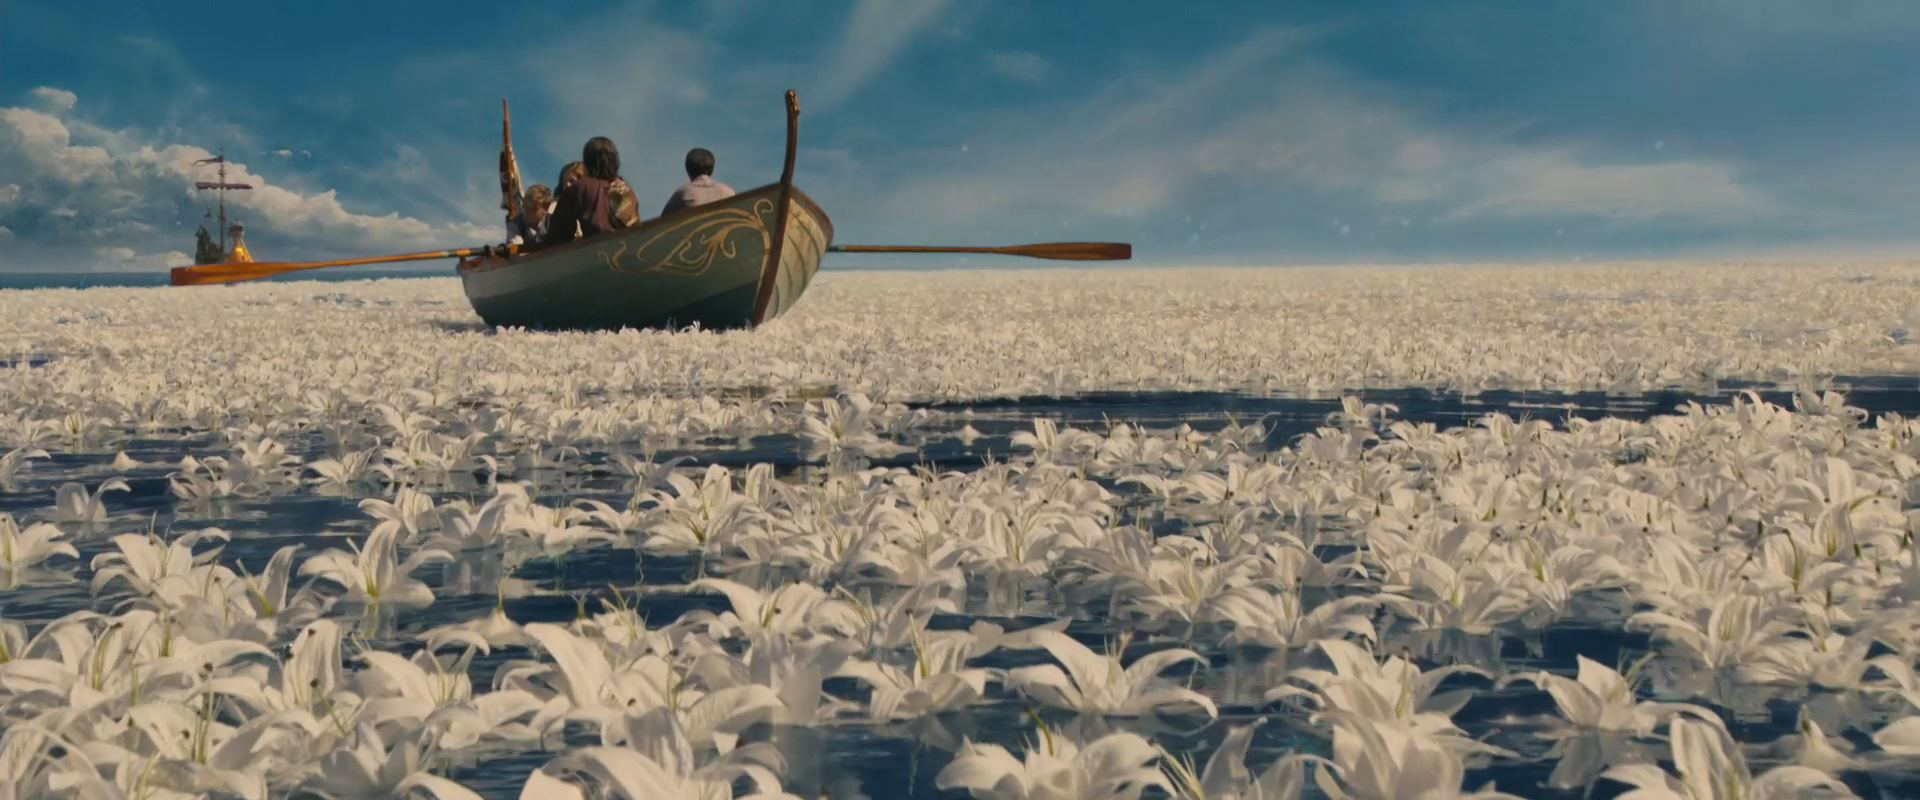 1920x800 - The Chronicles of Narnia: The Voyage of the Dawn Treader Wallpapers 25